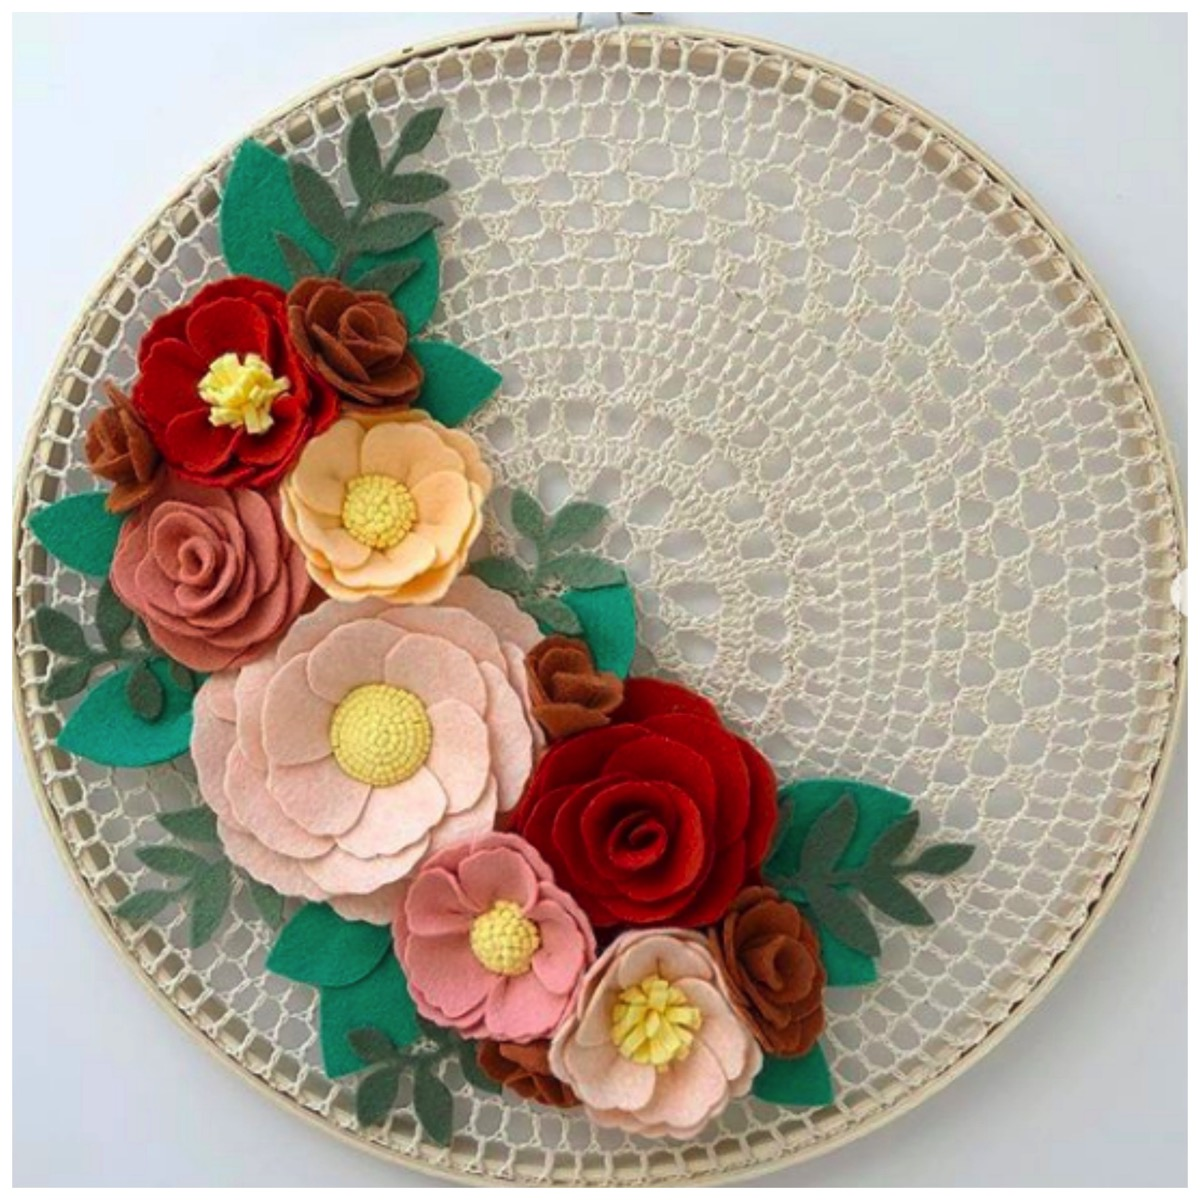 Clemmy lou designs colorful floral art for home